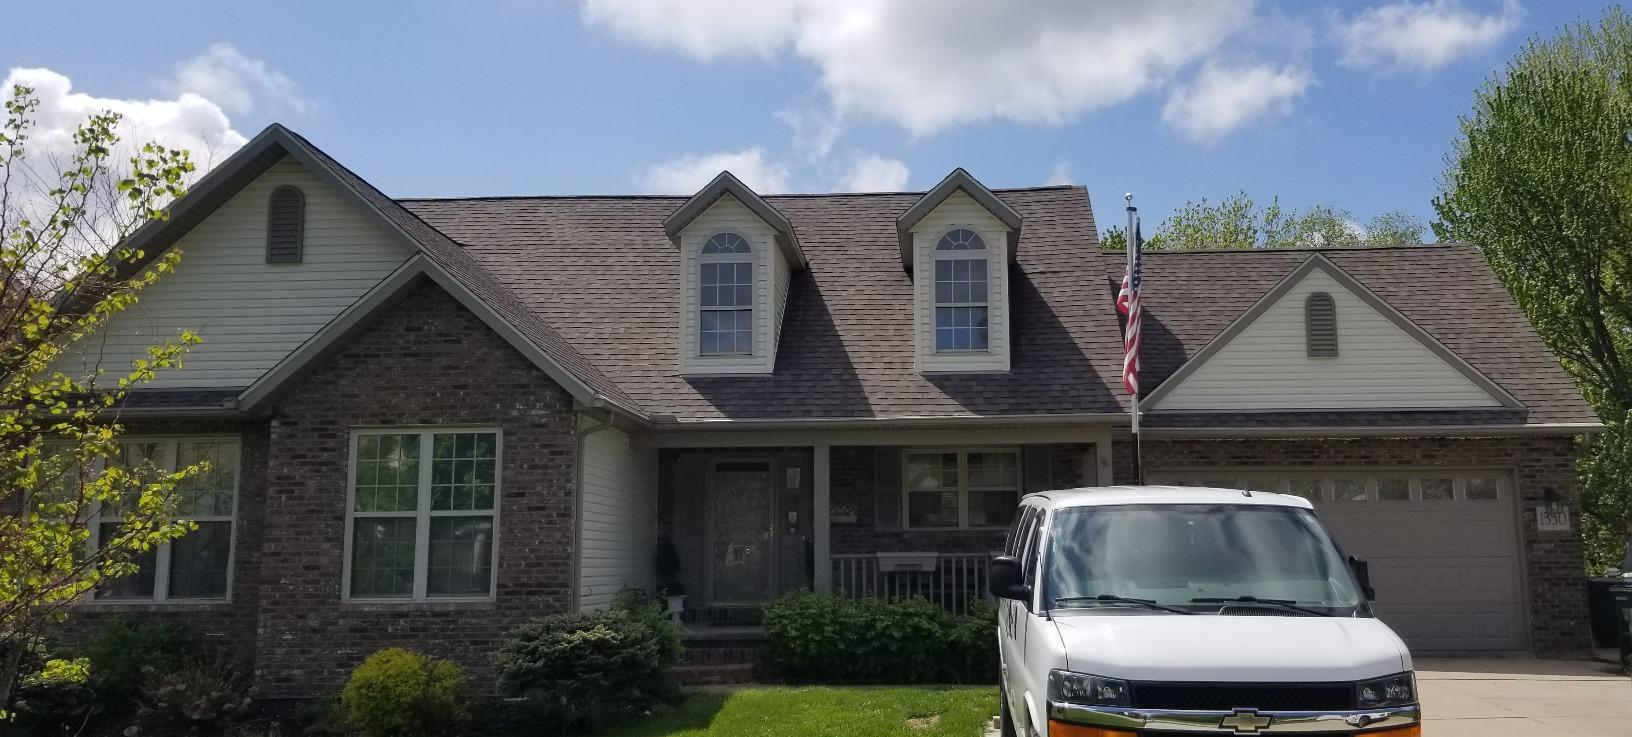 Painesville Township Roof Replacement - Before Photo